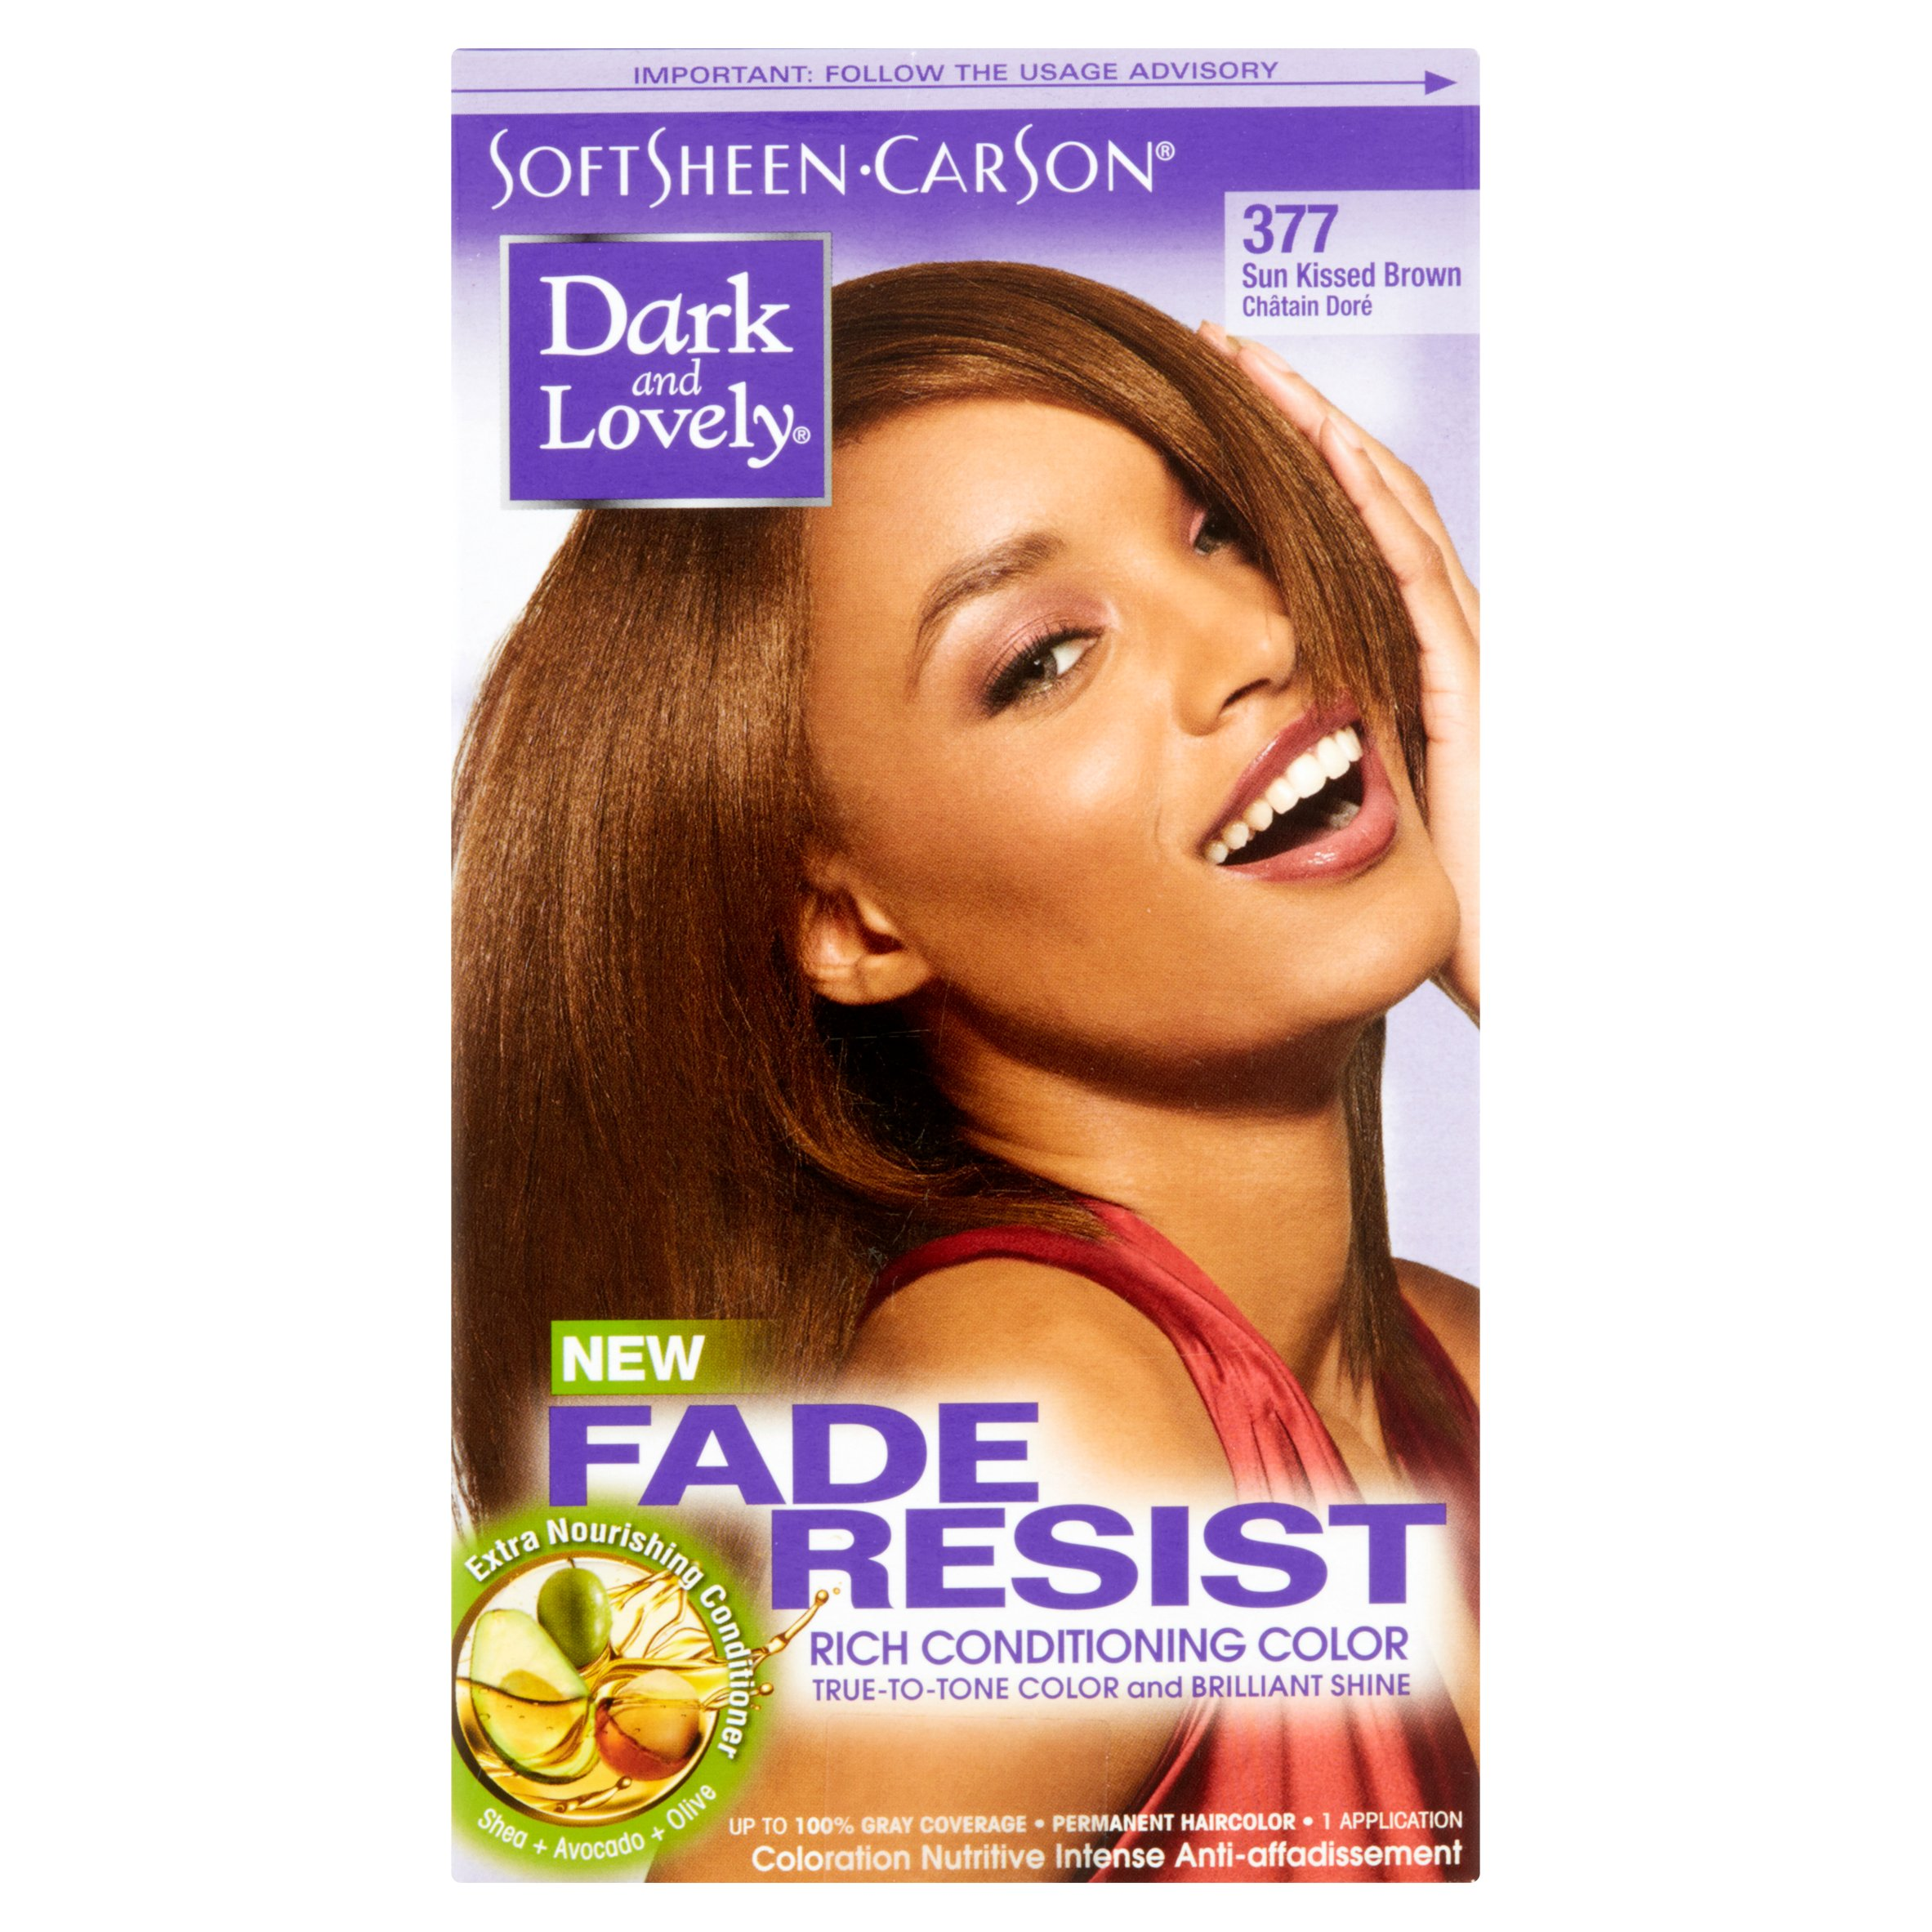 SoftSheen-Carson Dark and Lovely Fade Resist Rich Conditioning Color, #